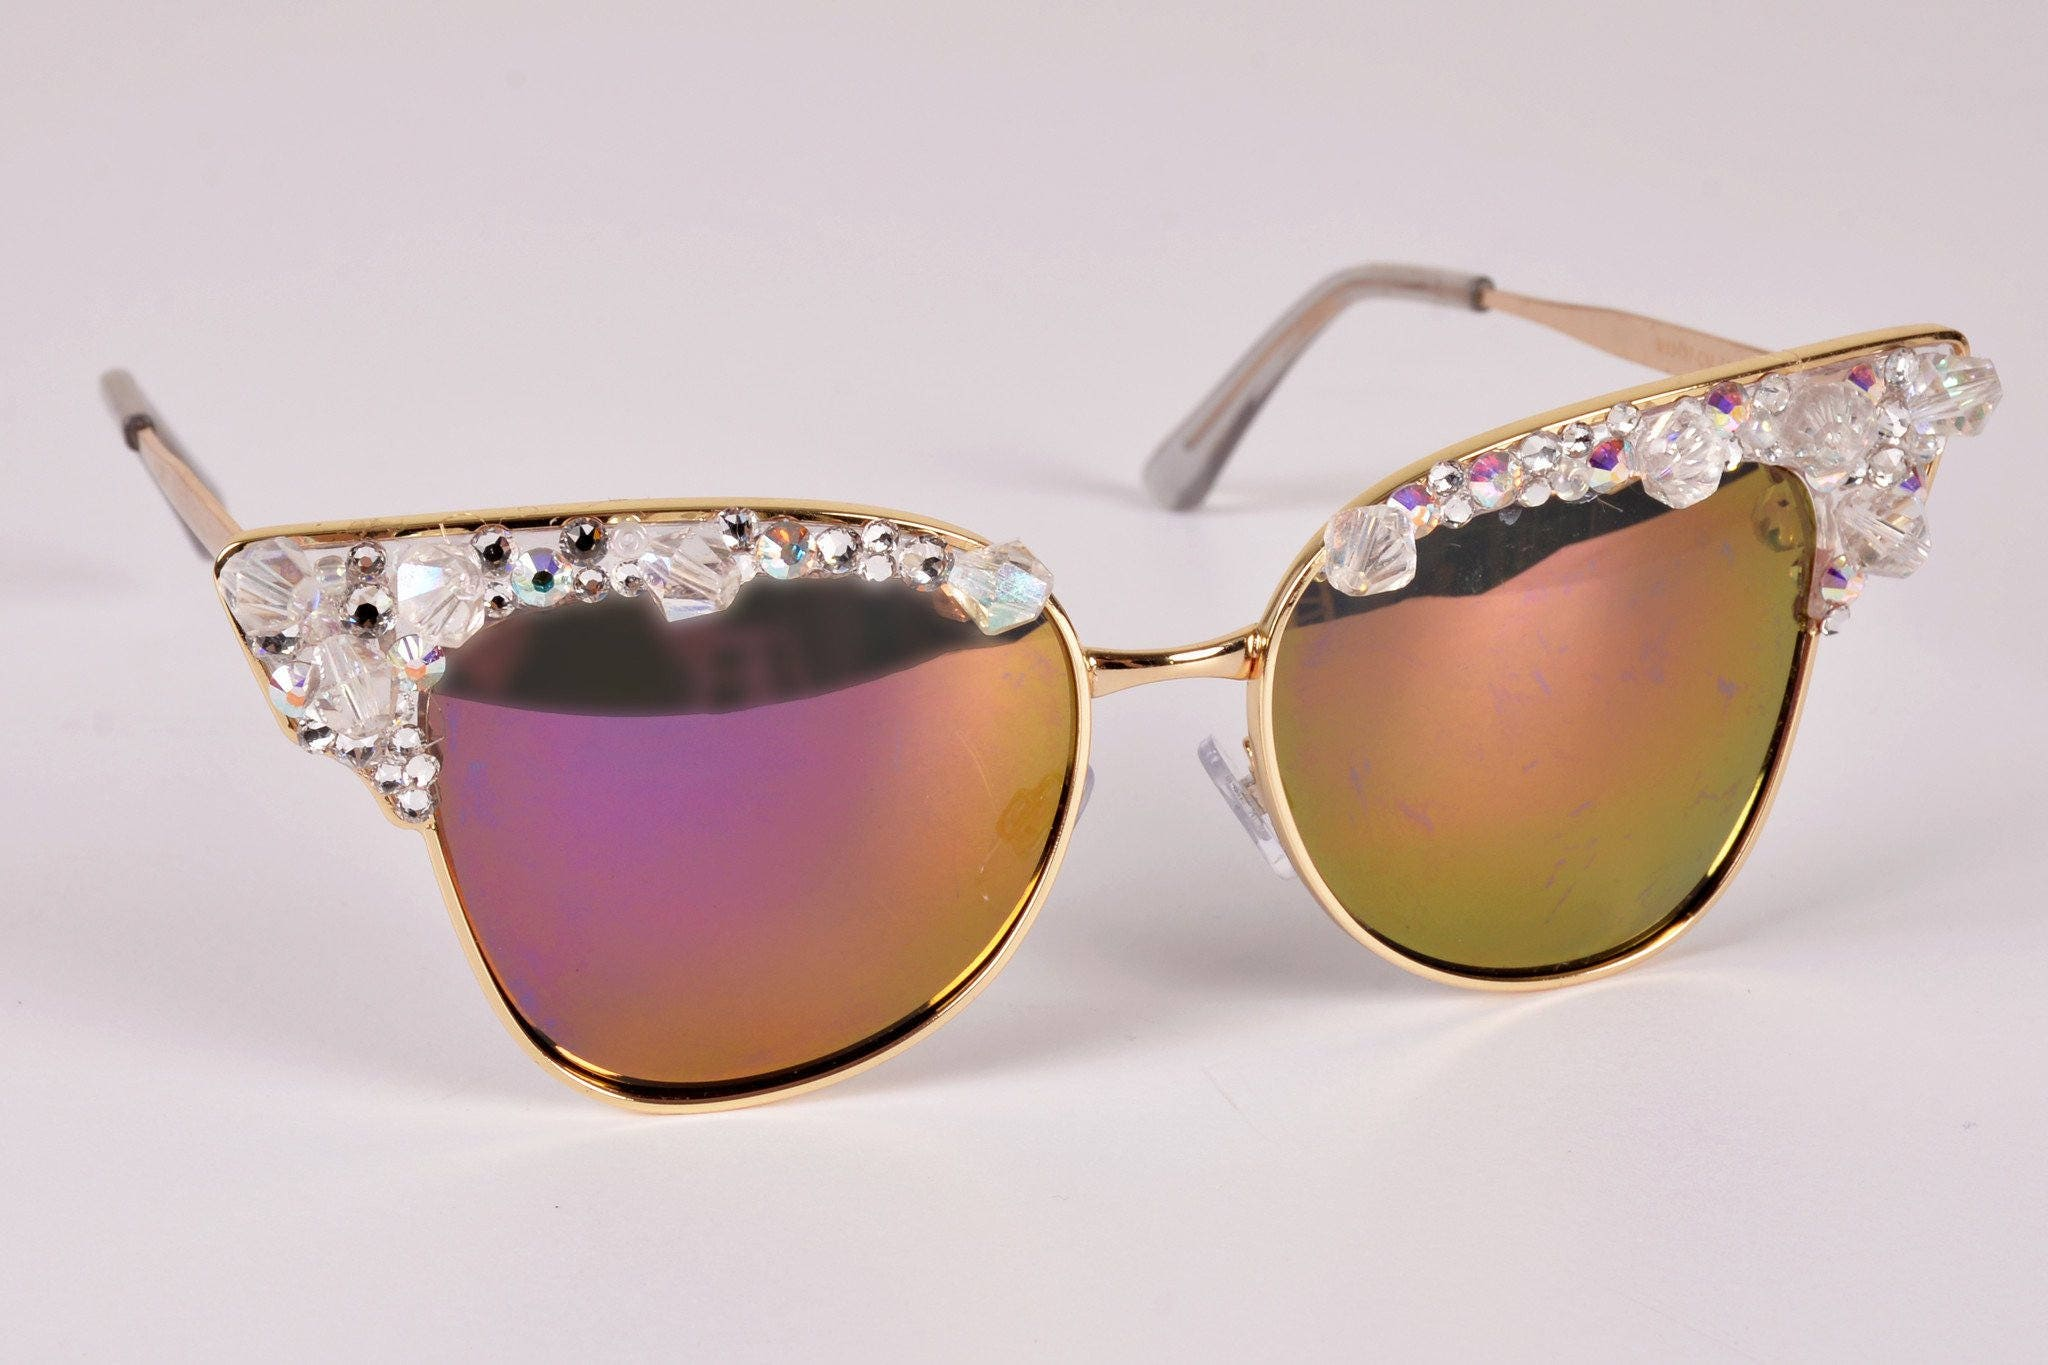 5c984c89d1 Custom sunglasses bling sunglasses-cute swarovski crystal